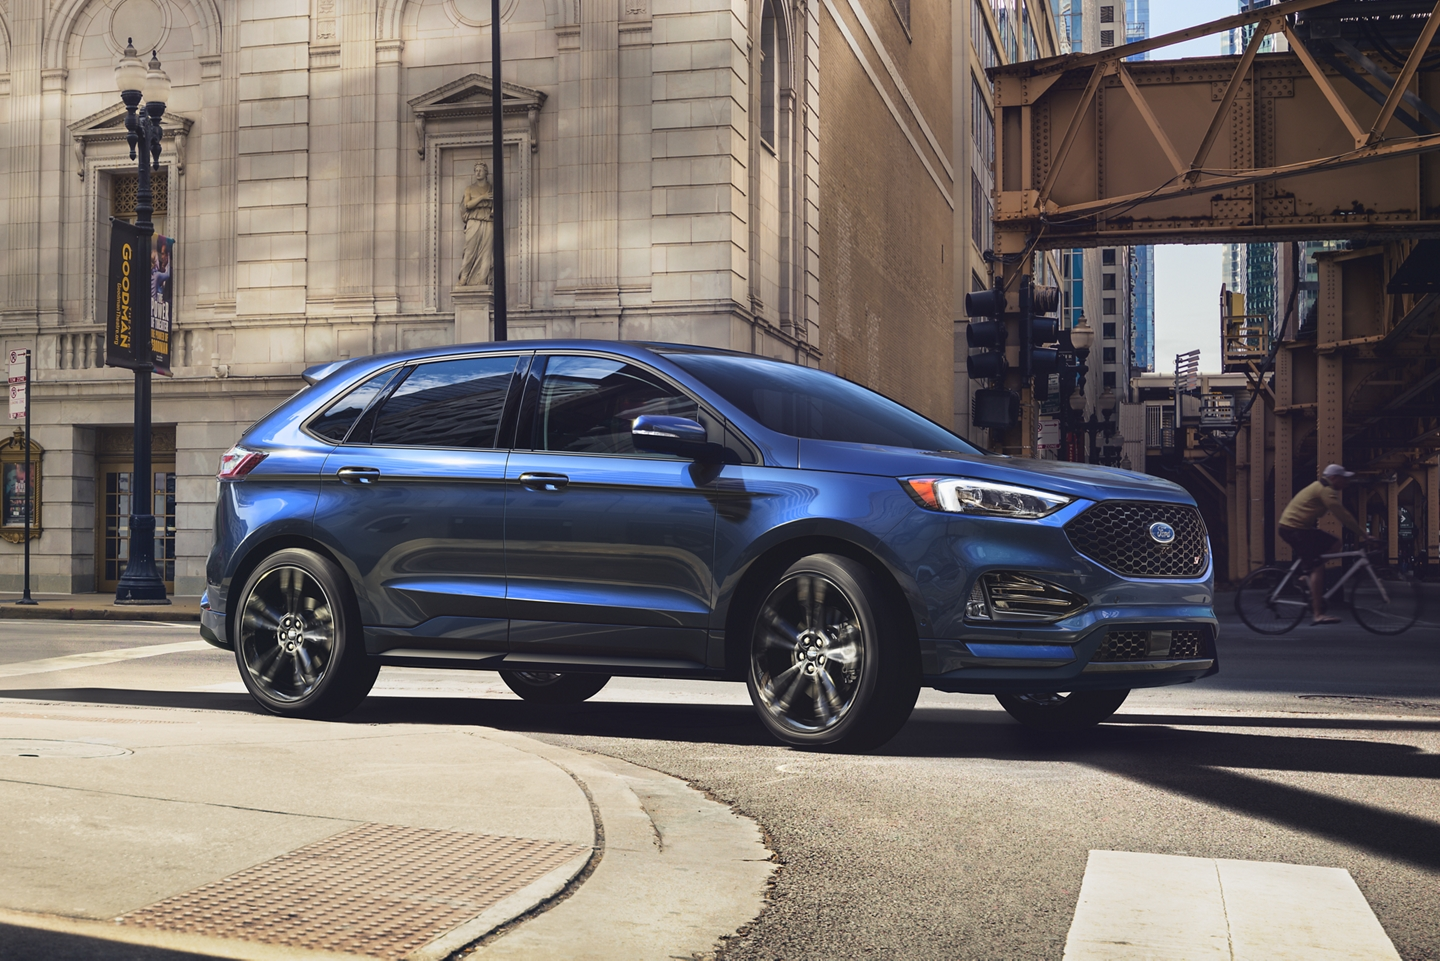 2020 Ford Edge Price, Design and Review